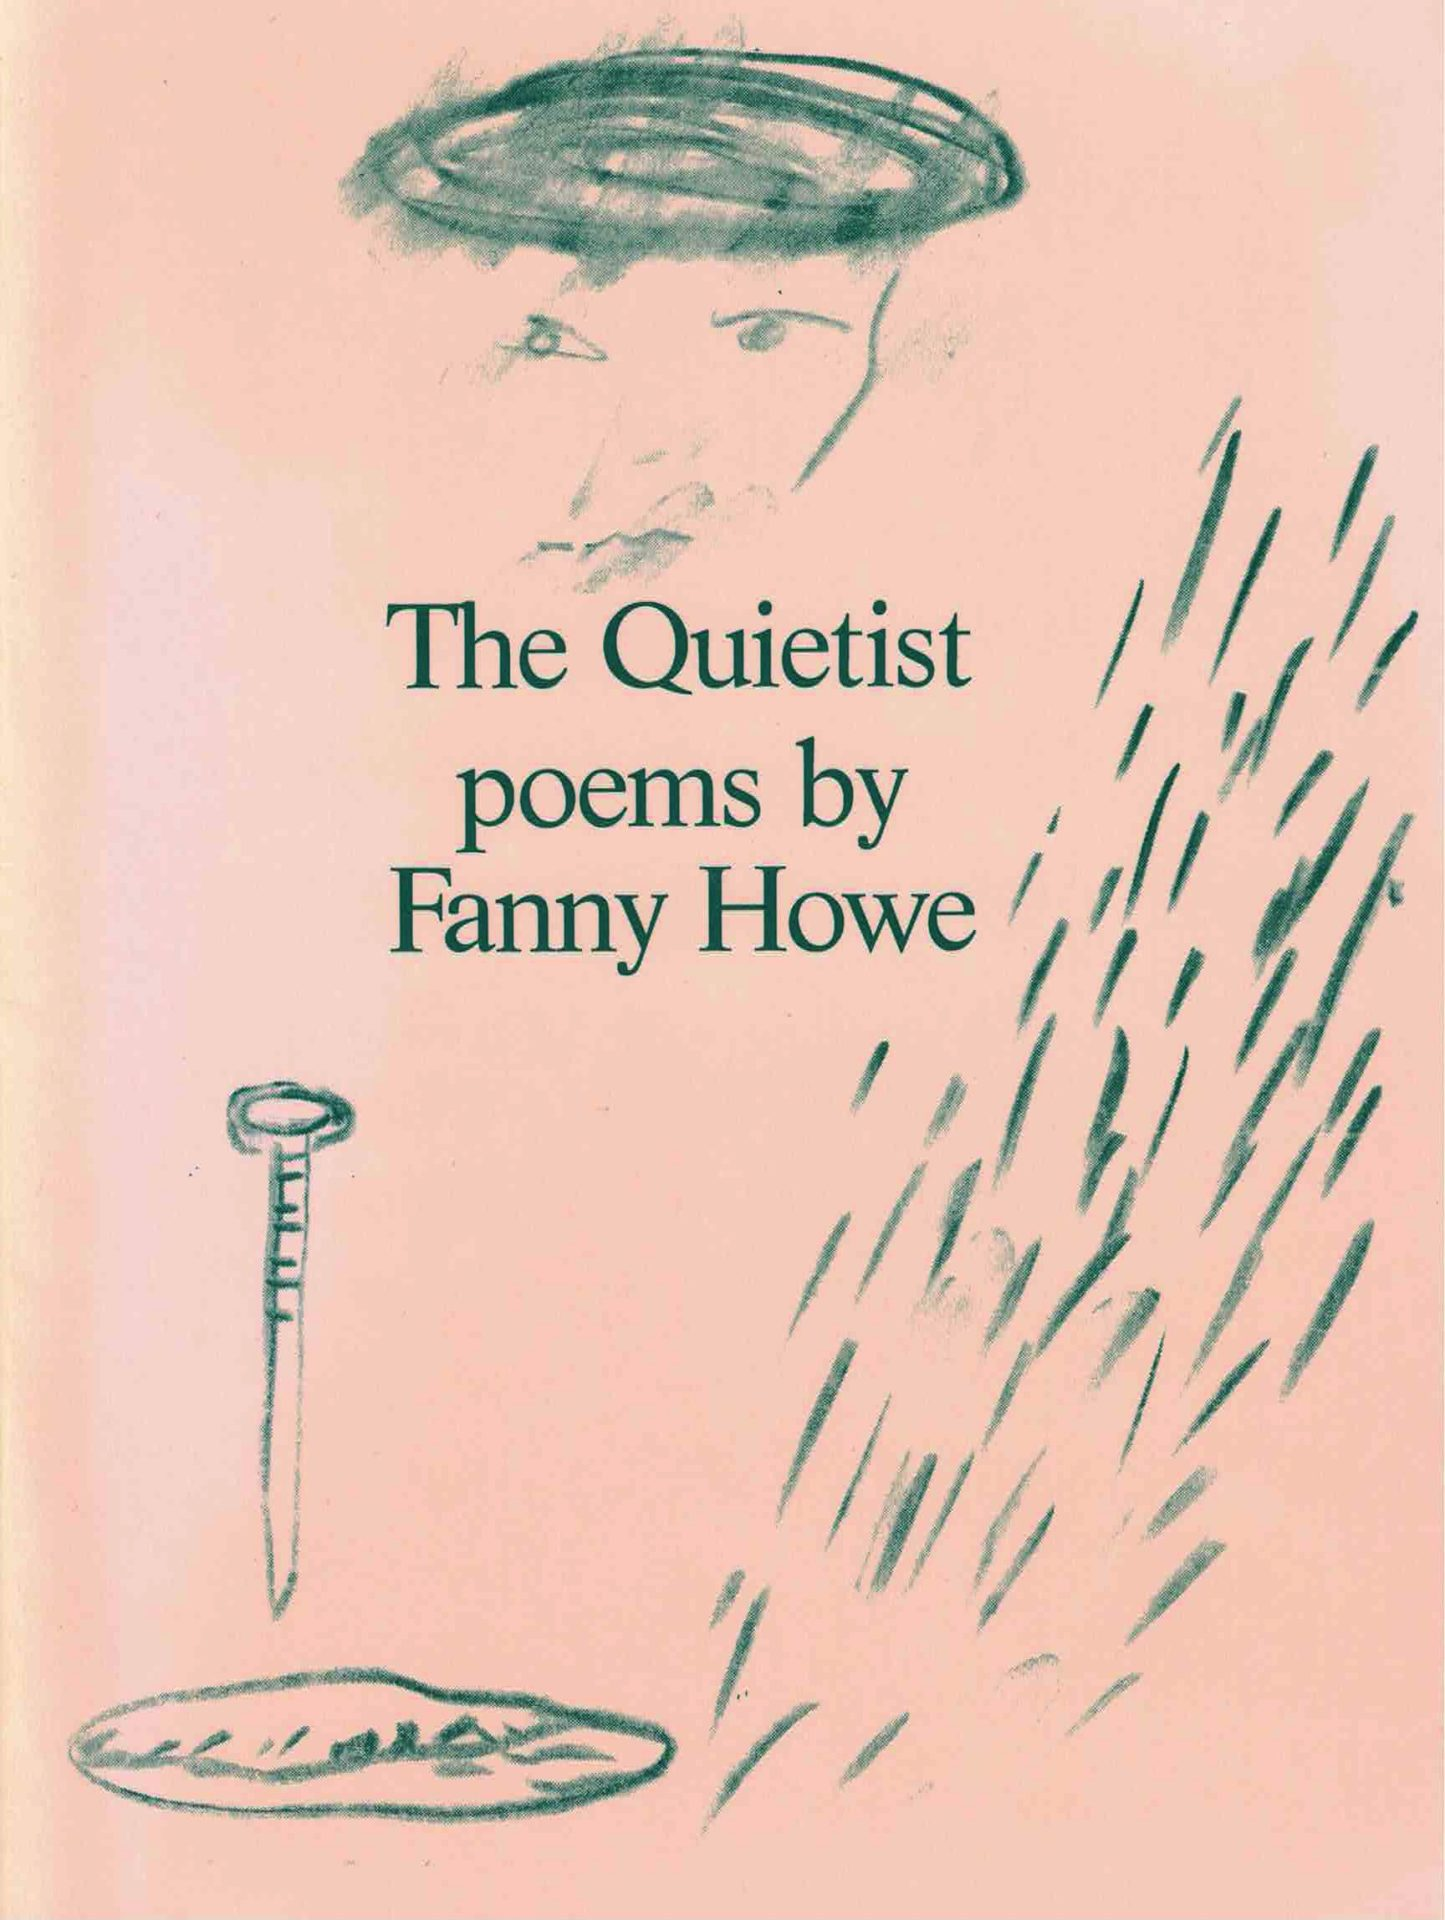 cover of The Quietist by Fanny Howe, pale pink background with dark green hand drawing of lines like rain, a nail over an oval, and a face with a circle hat